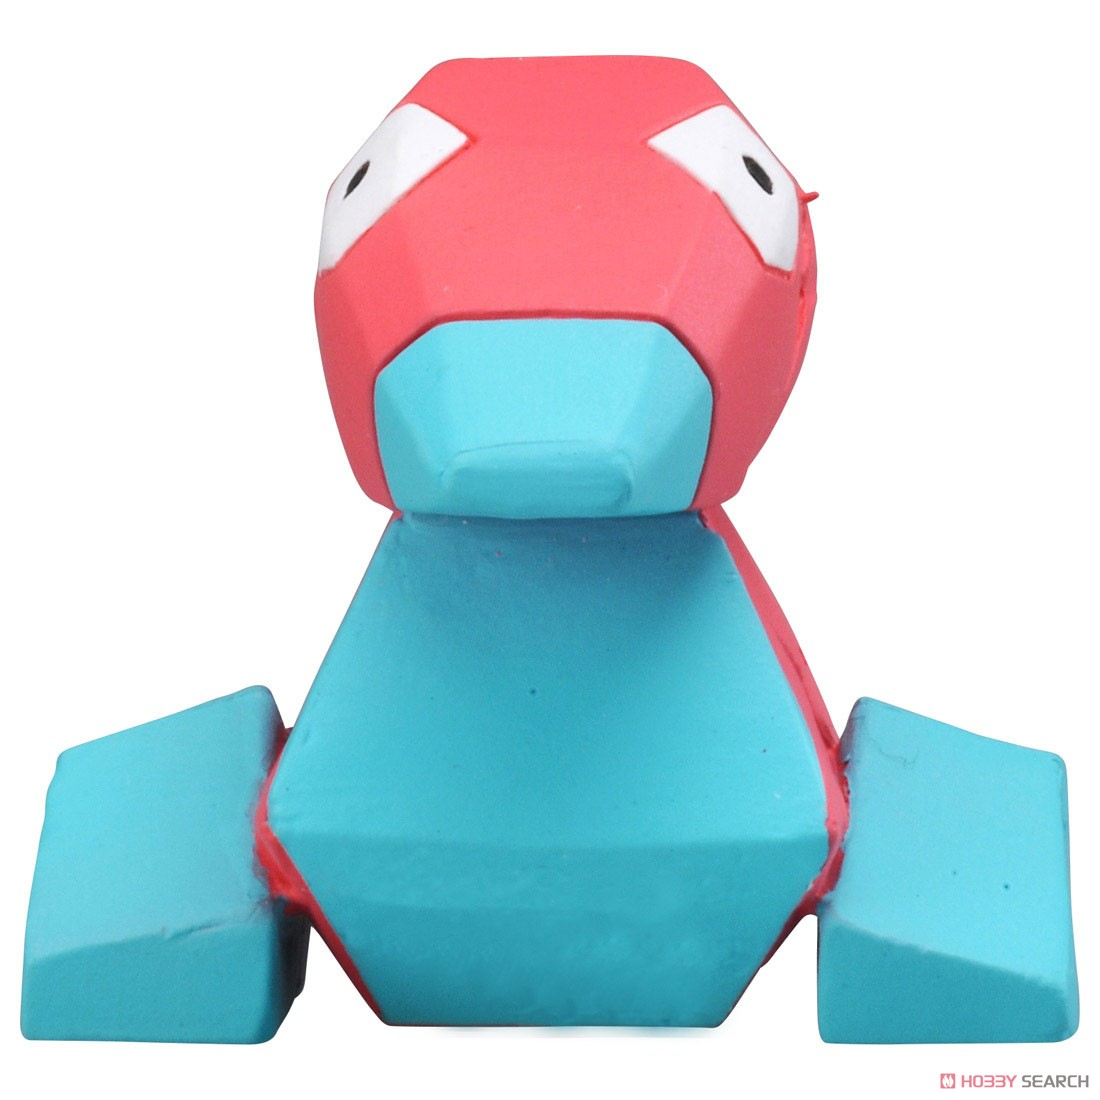 Monster CollectionEX EMC-08 Porygon (Character Toy) Item picture2